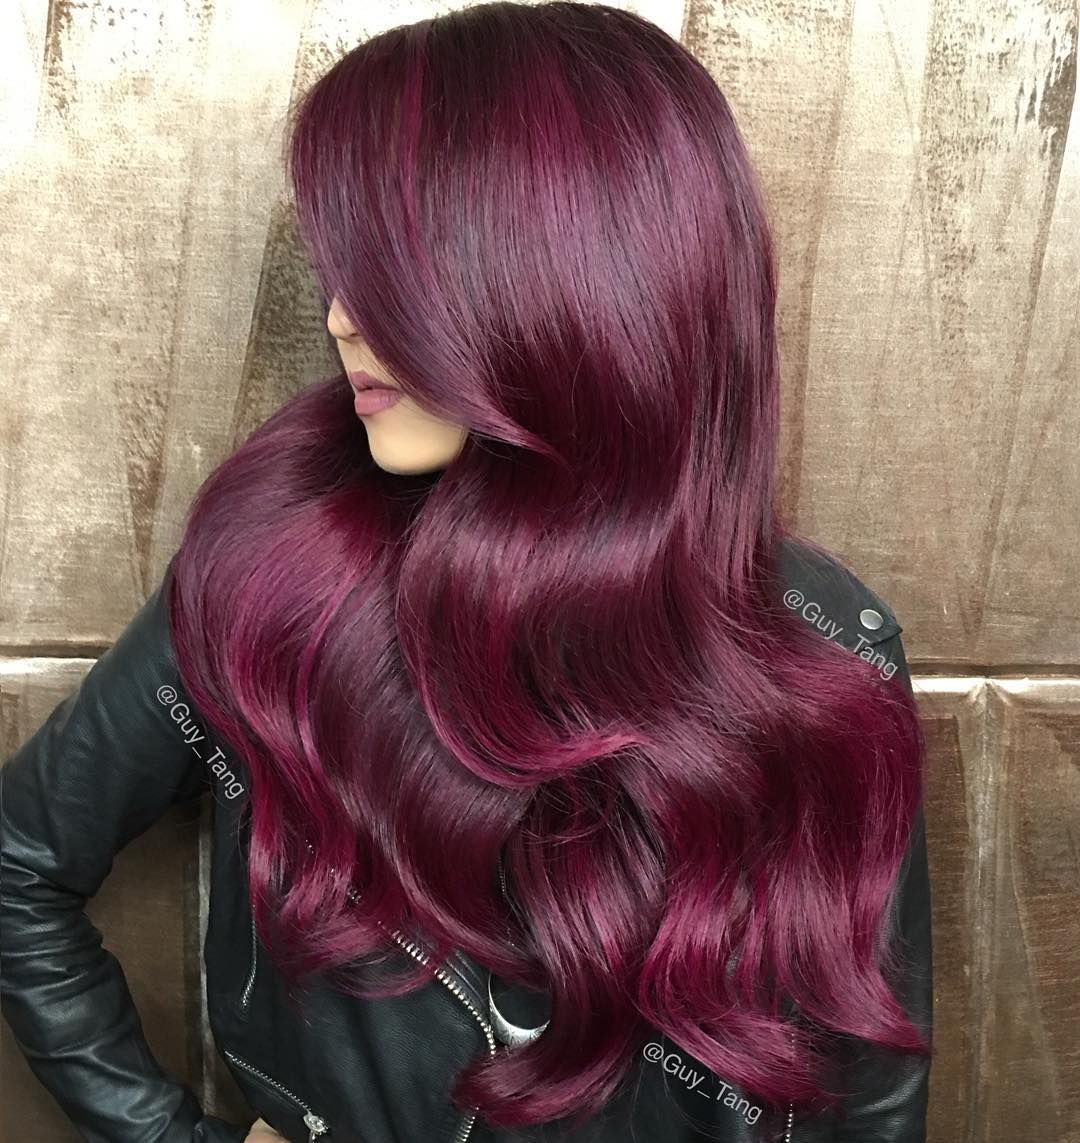 Personal Witches Capelli Pinterest Witches Red Hair And Hair